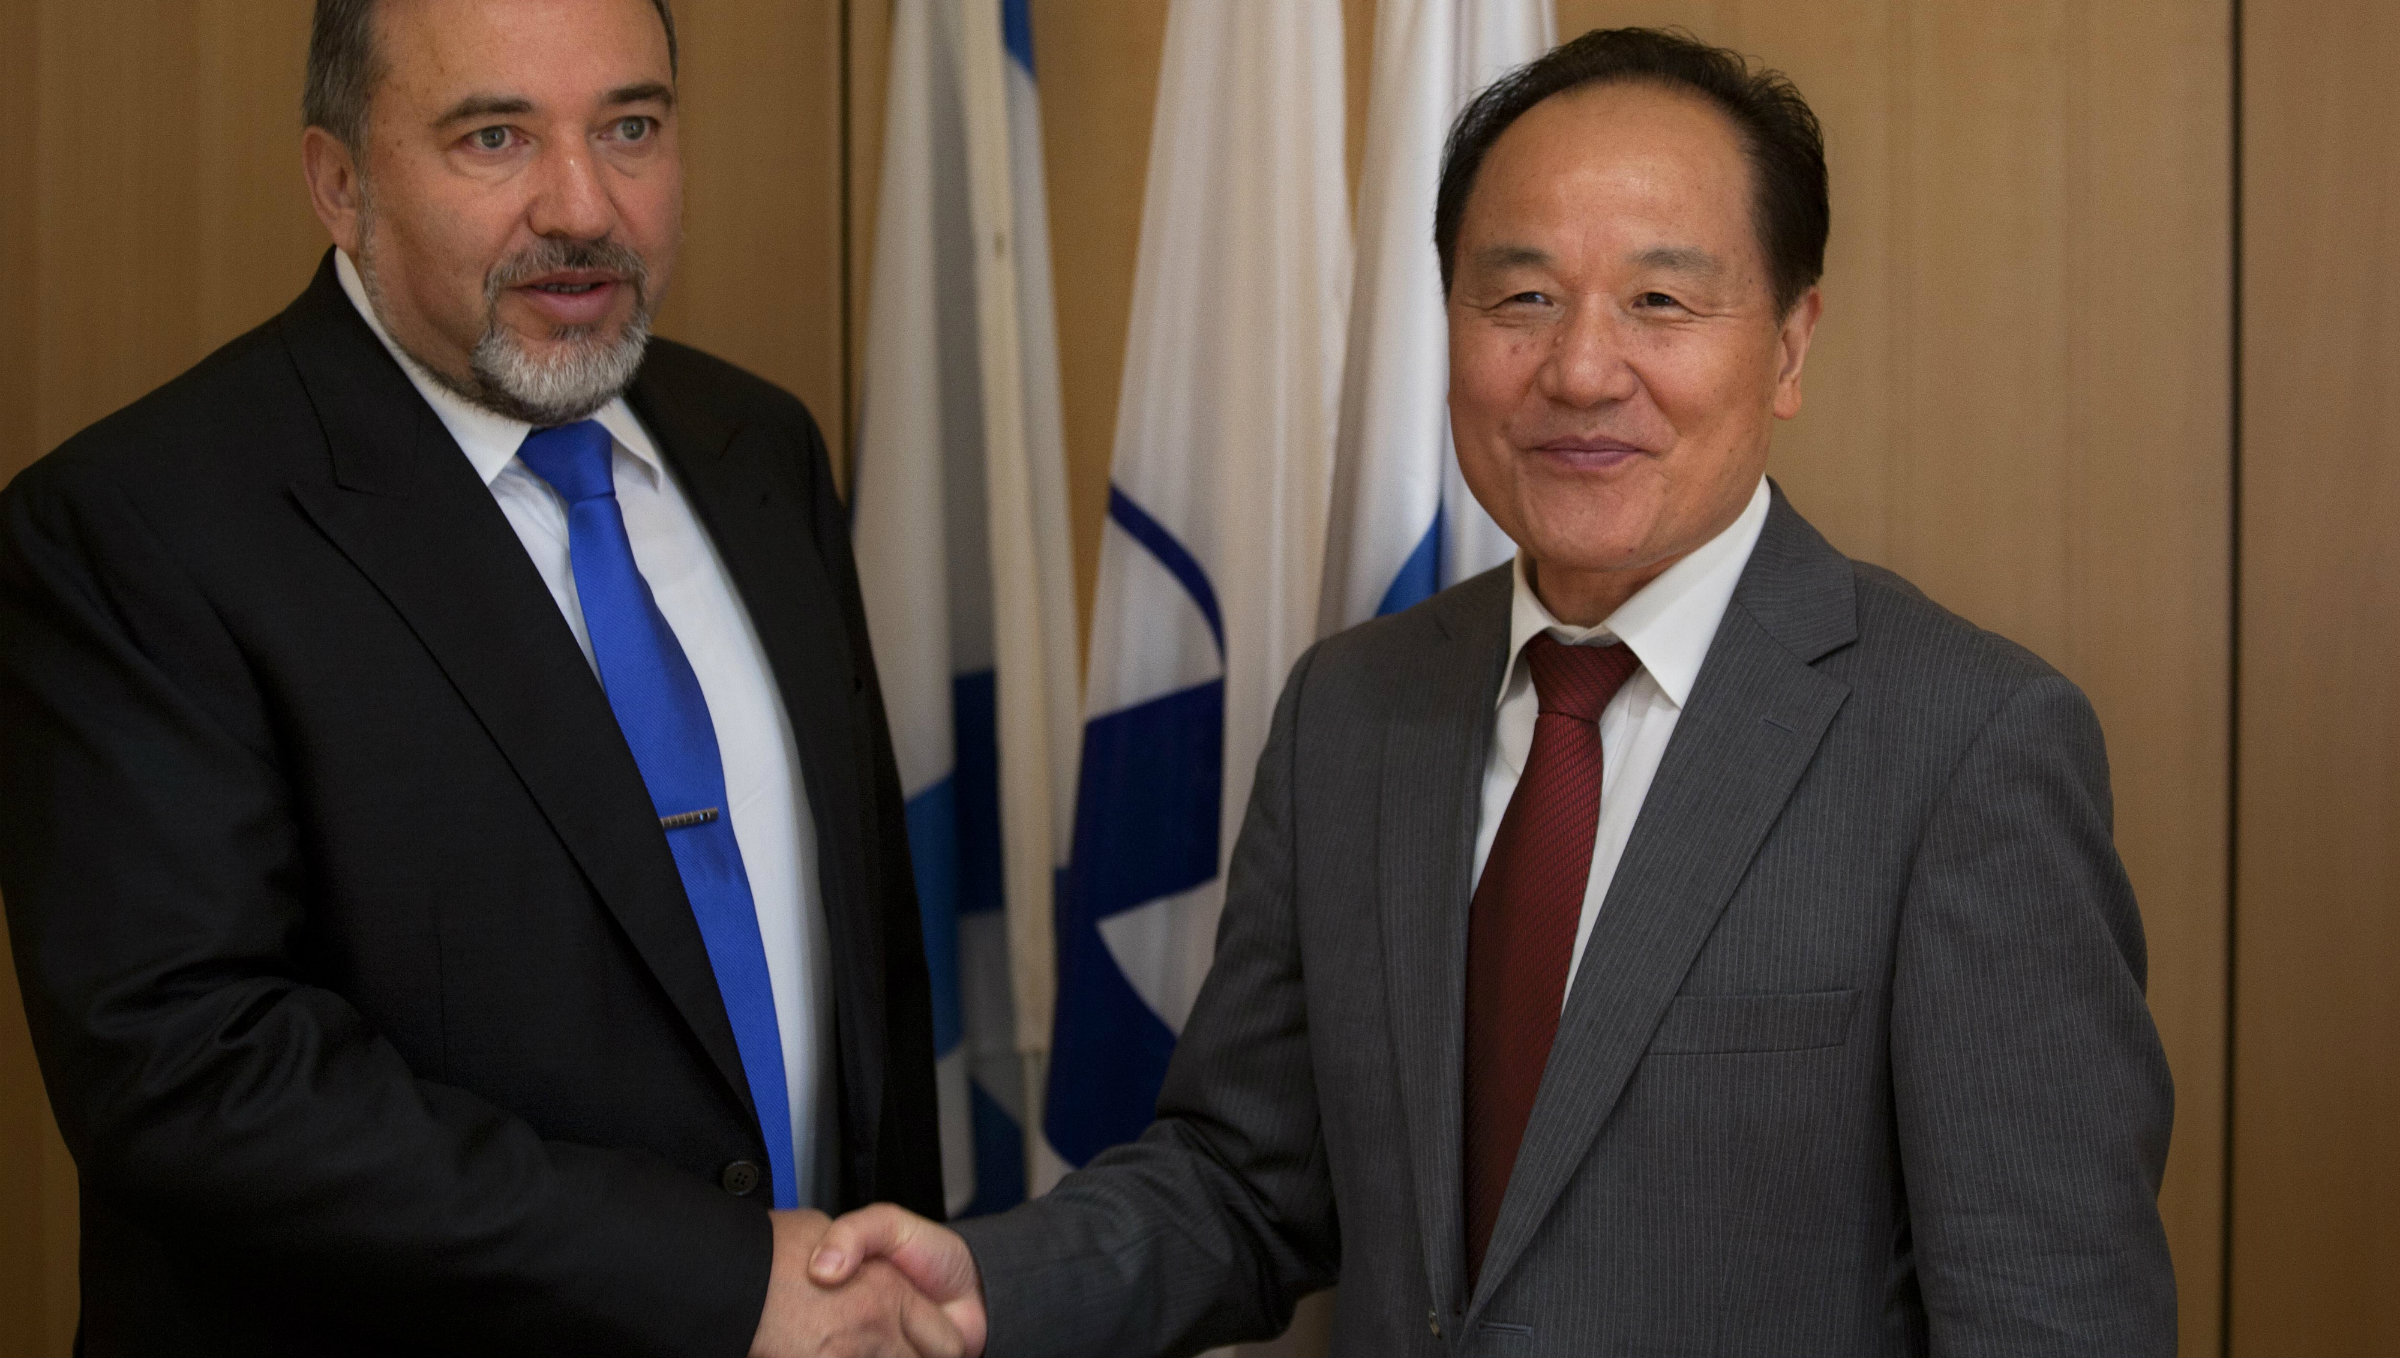 Wu Sike, right, shakes hands with Israeli Foreign Minister Avigdor Lieberman